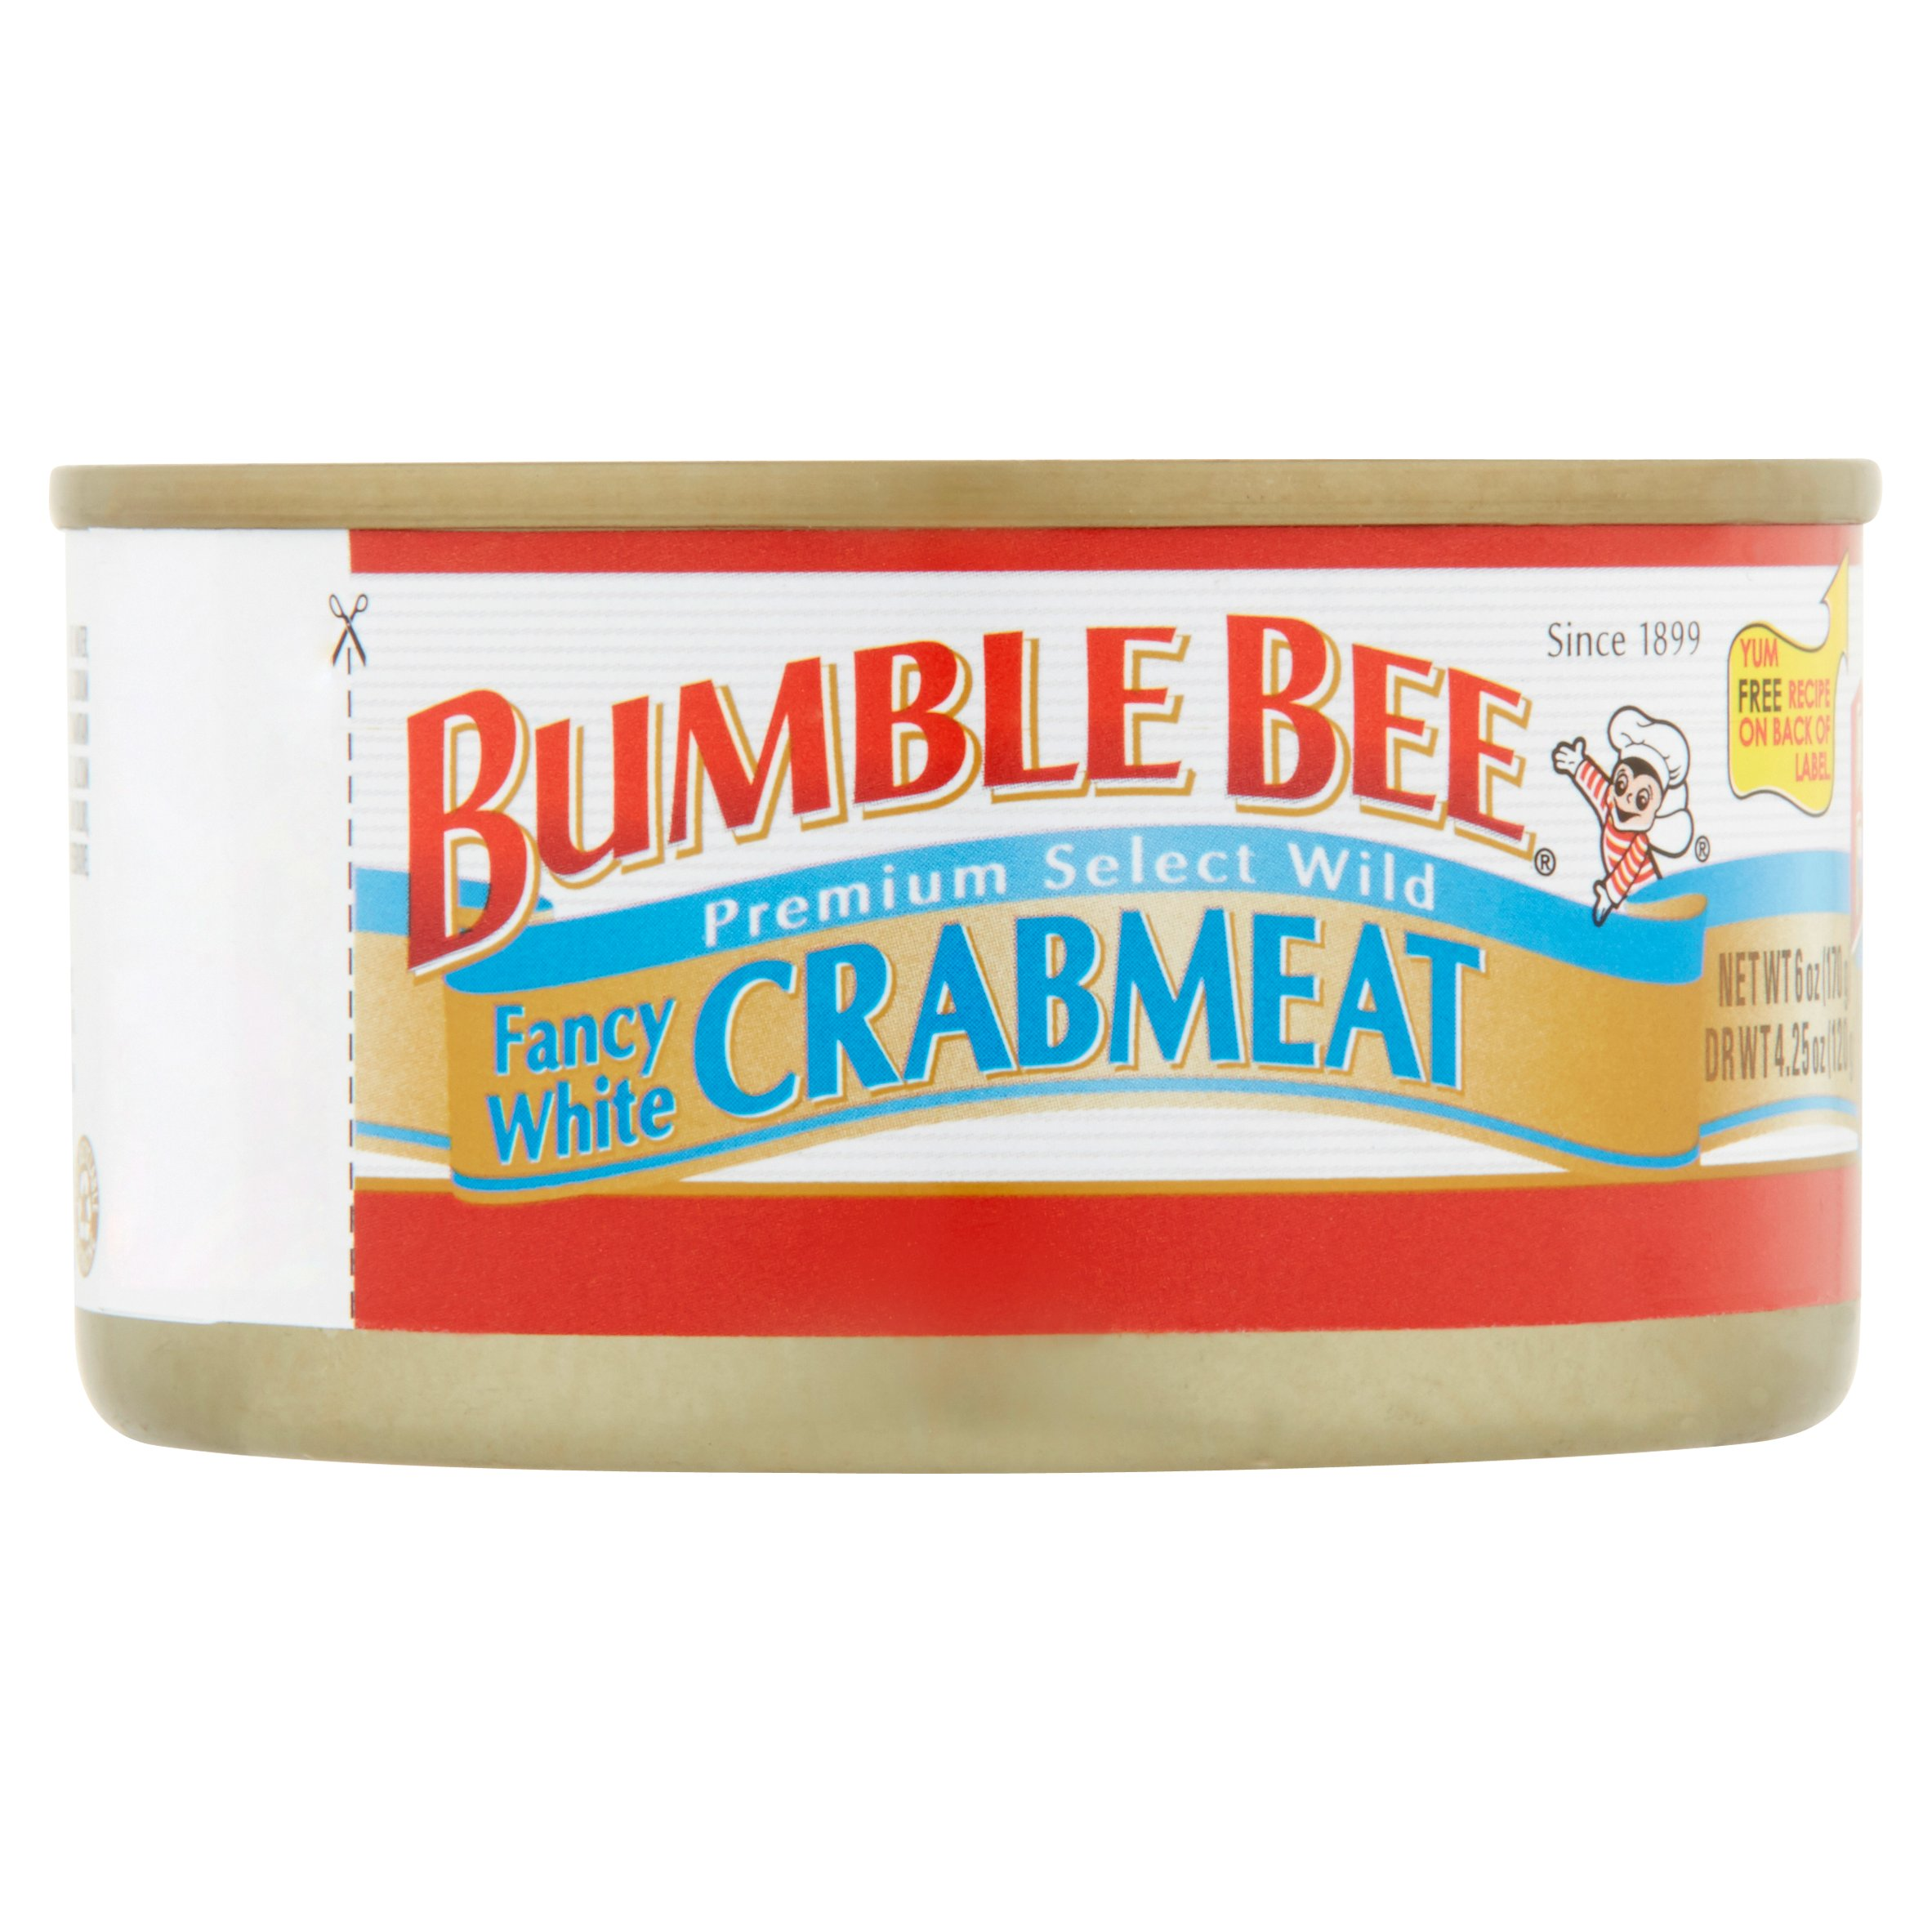 Bumble Bee Premium Select Wild Fancy White Crabmeat, 6oz can by Bumble Bee Seafoods